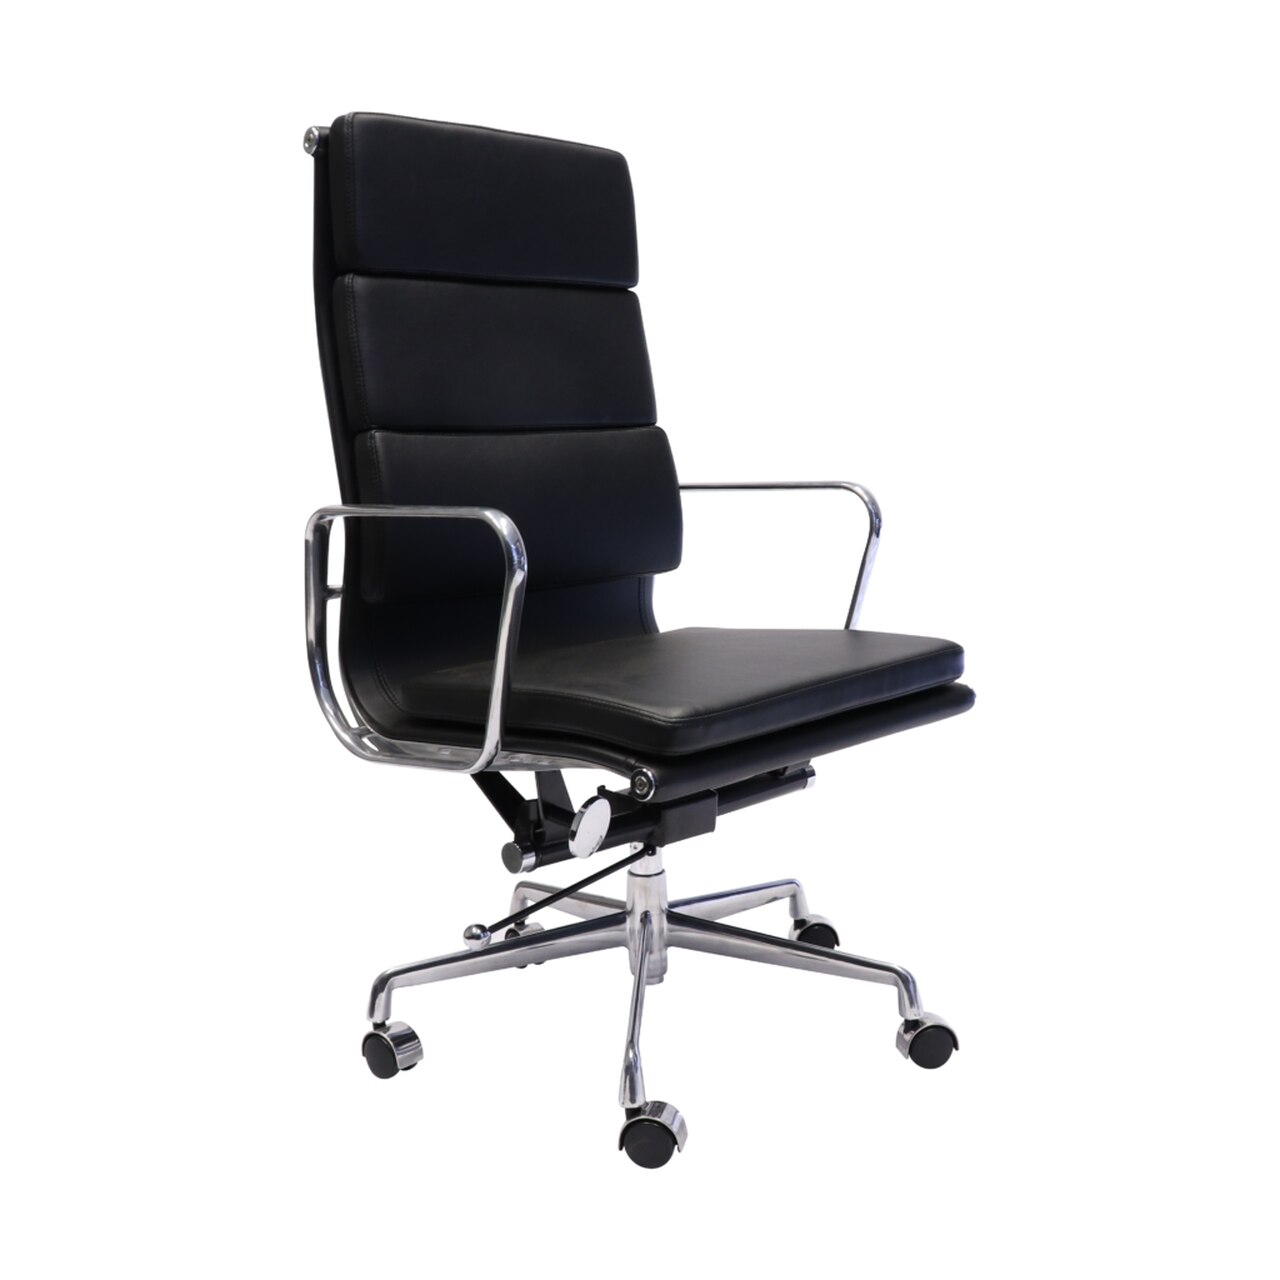 TF900 High Back Boardroom/Executive Chair